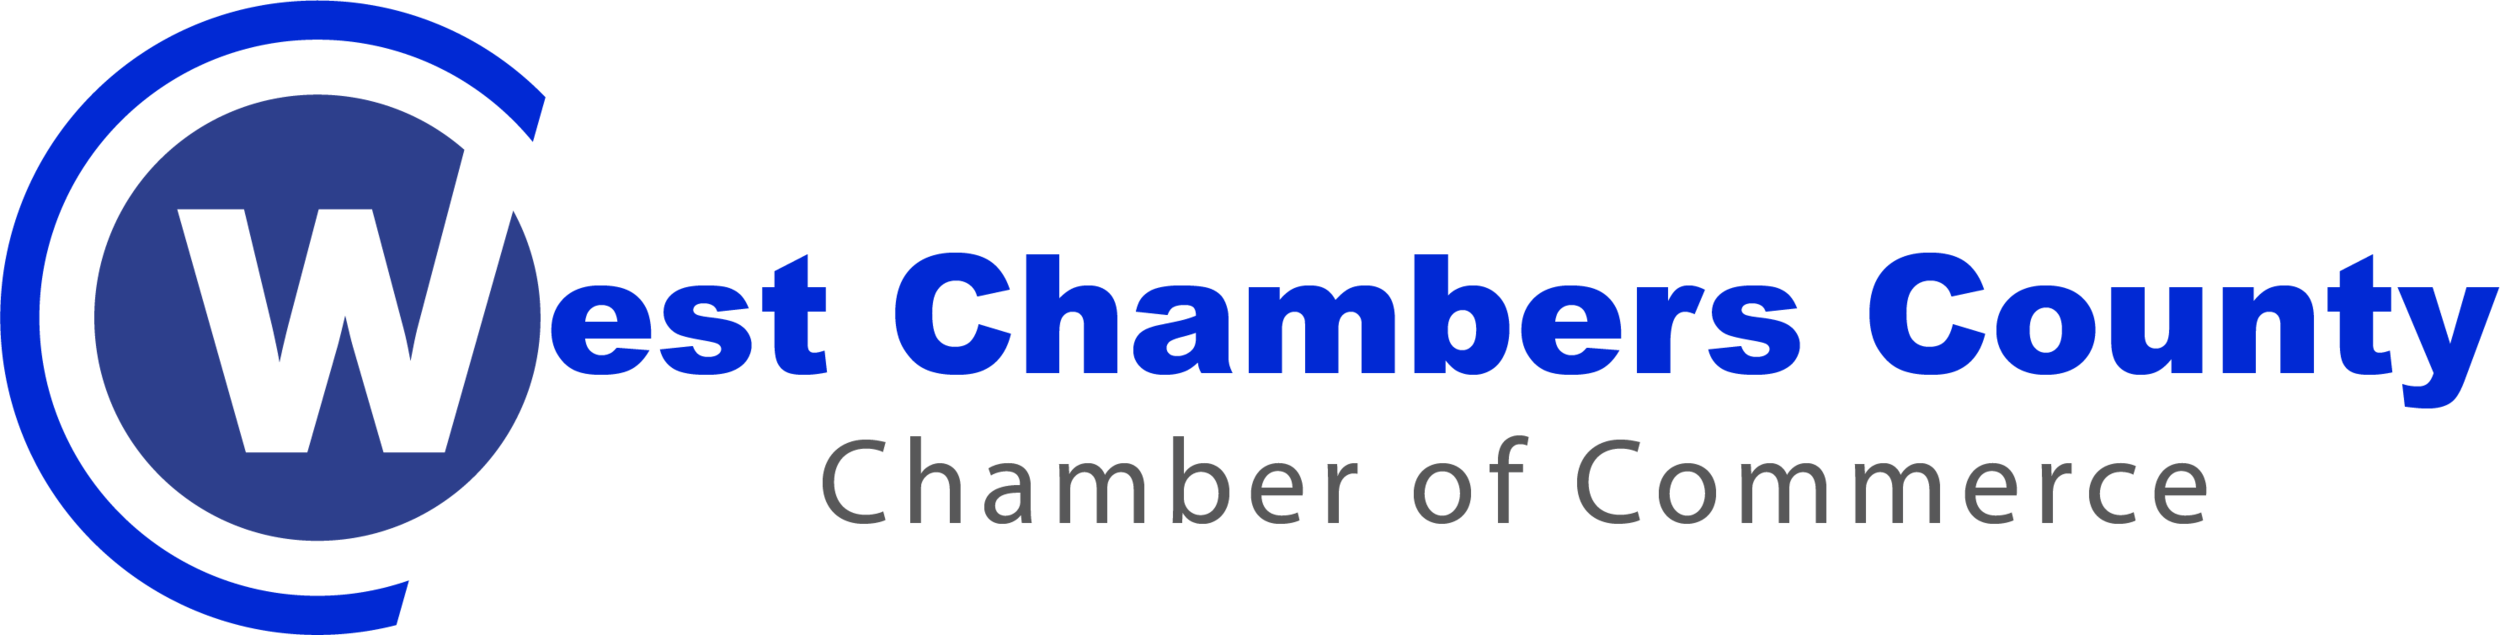 West Chambers County Chamber Of Commerce Logo Design by SERP Matrix